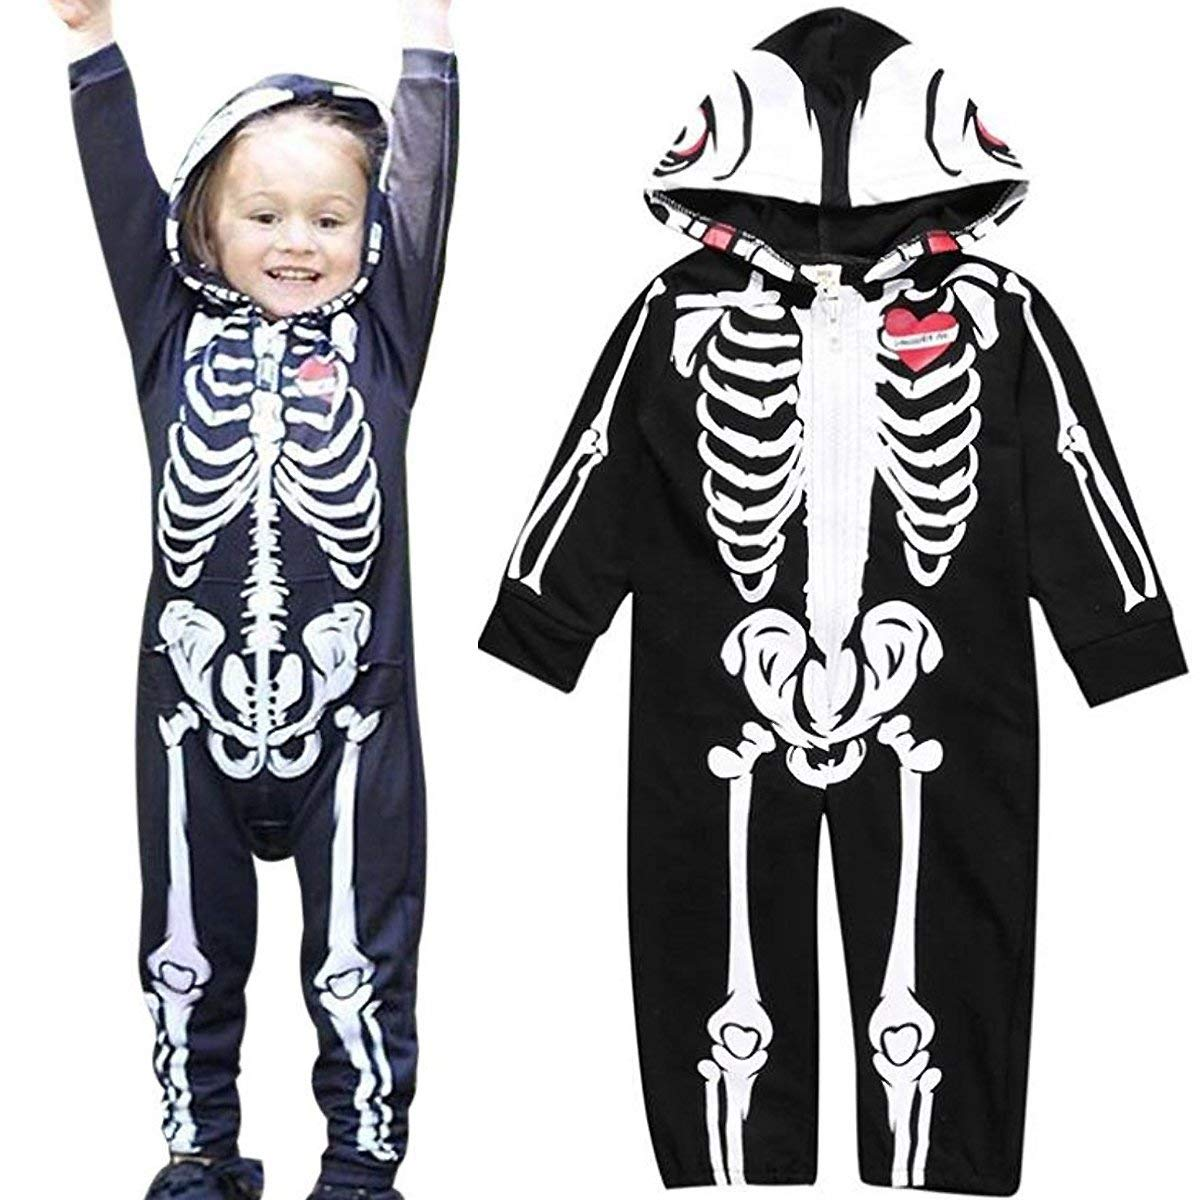 LOTUCY Toddler Baby Boys Girls Long Sleeve Warm Hoodie Zipper Romper Baby Costumes Jumpsuit Autumn Winter Outfits